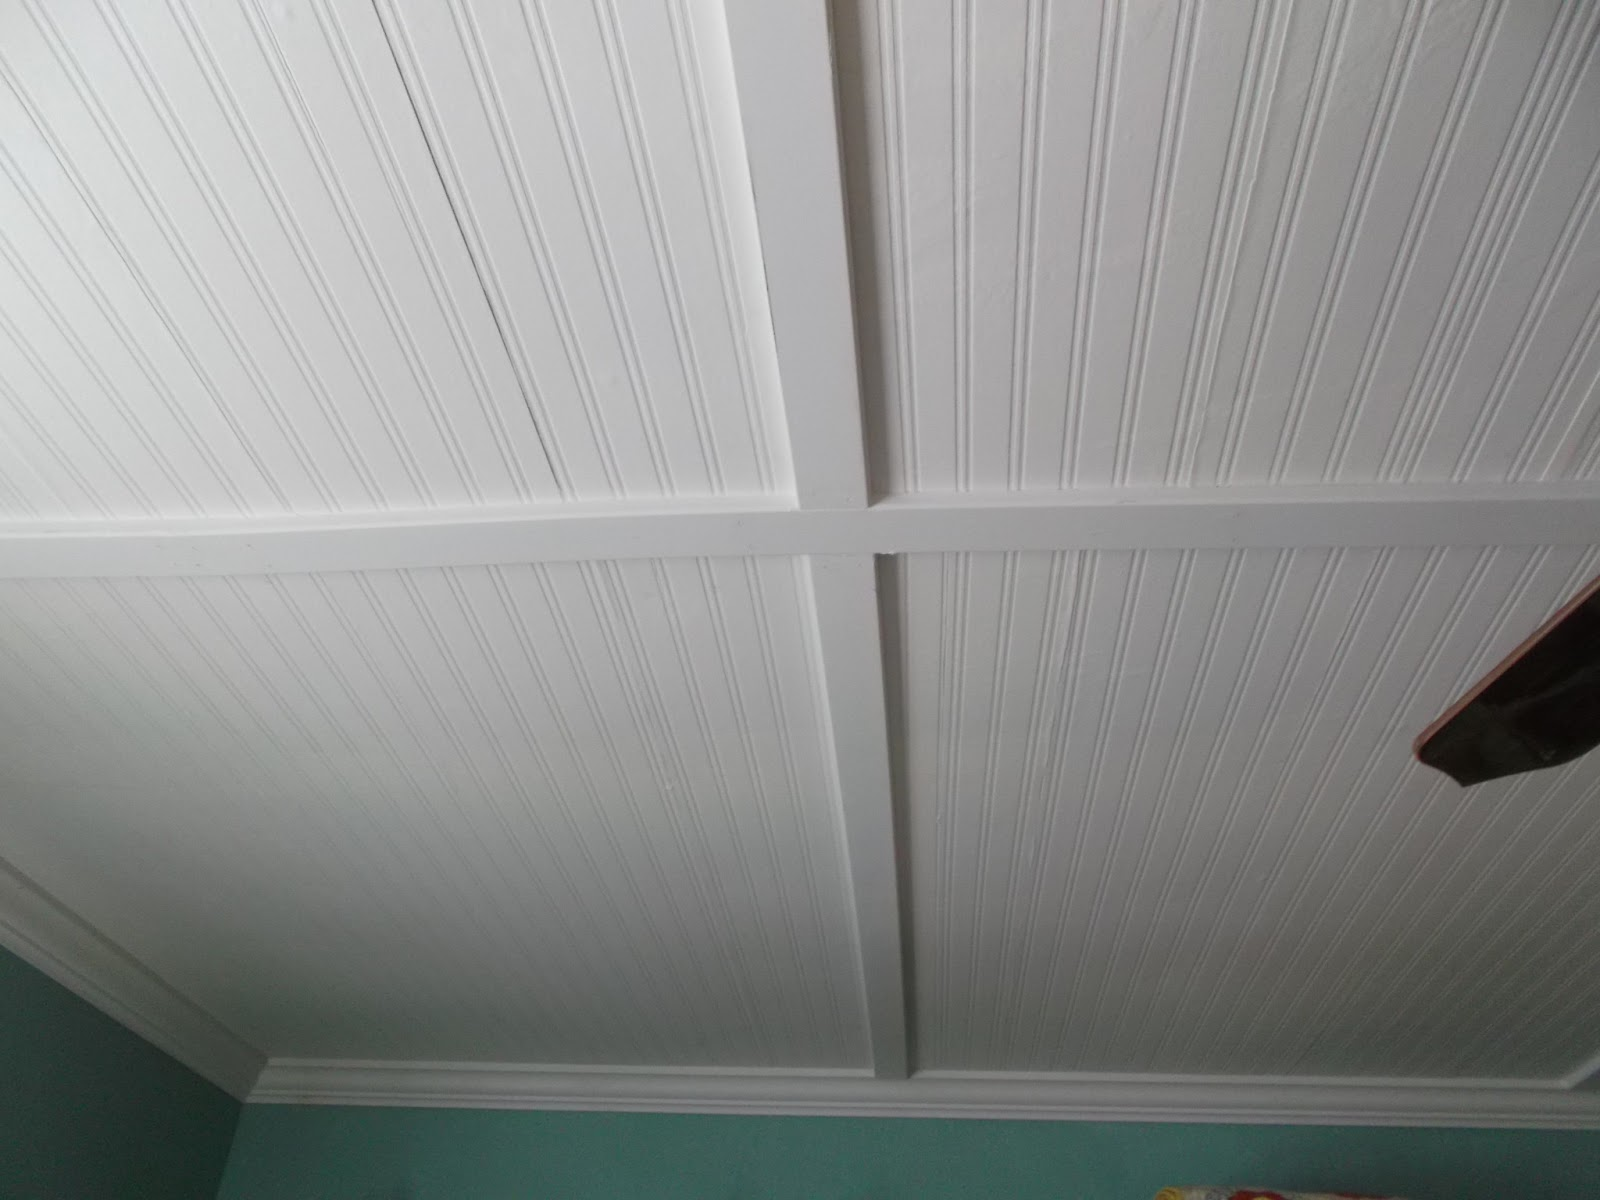 living a cottage life: Beadboard Ceiling